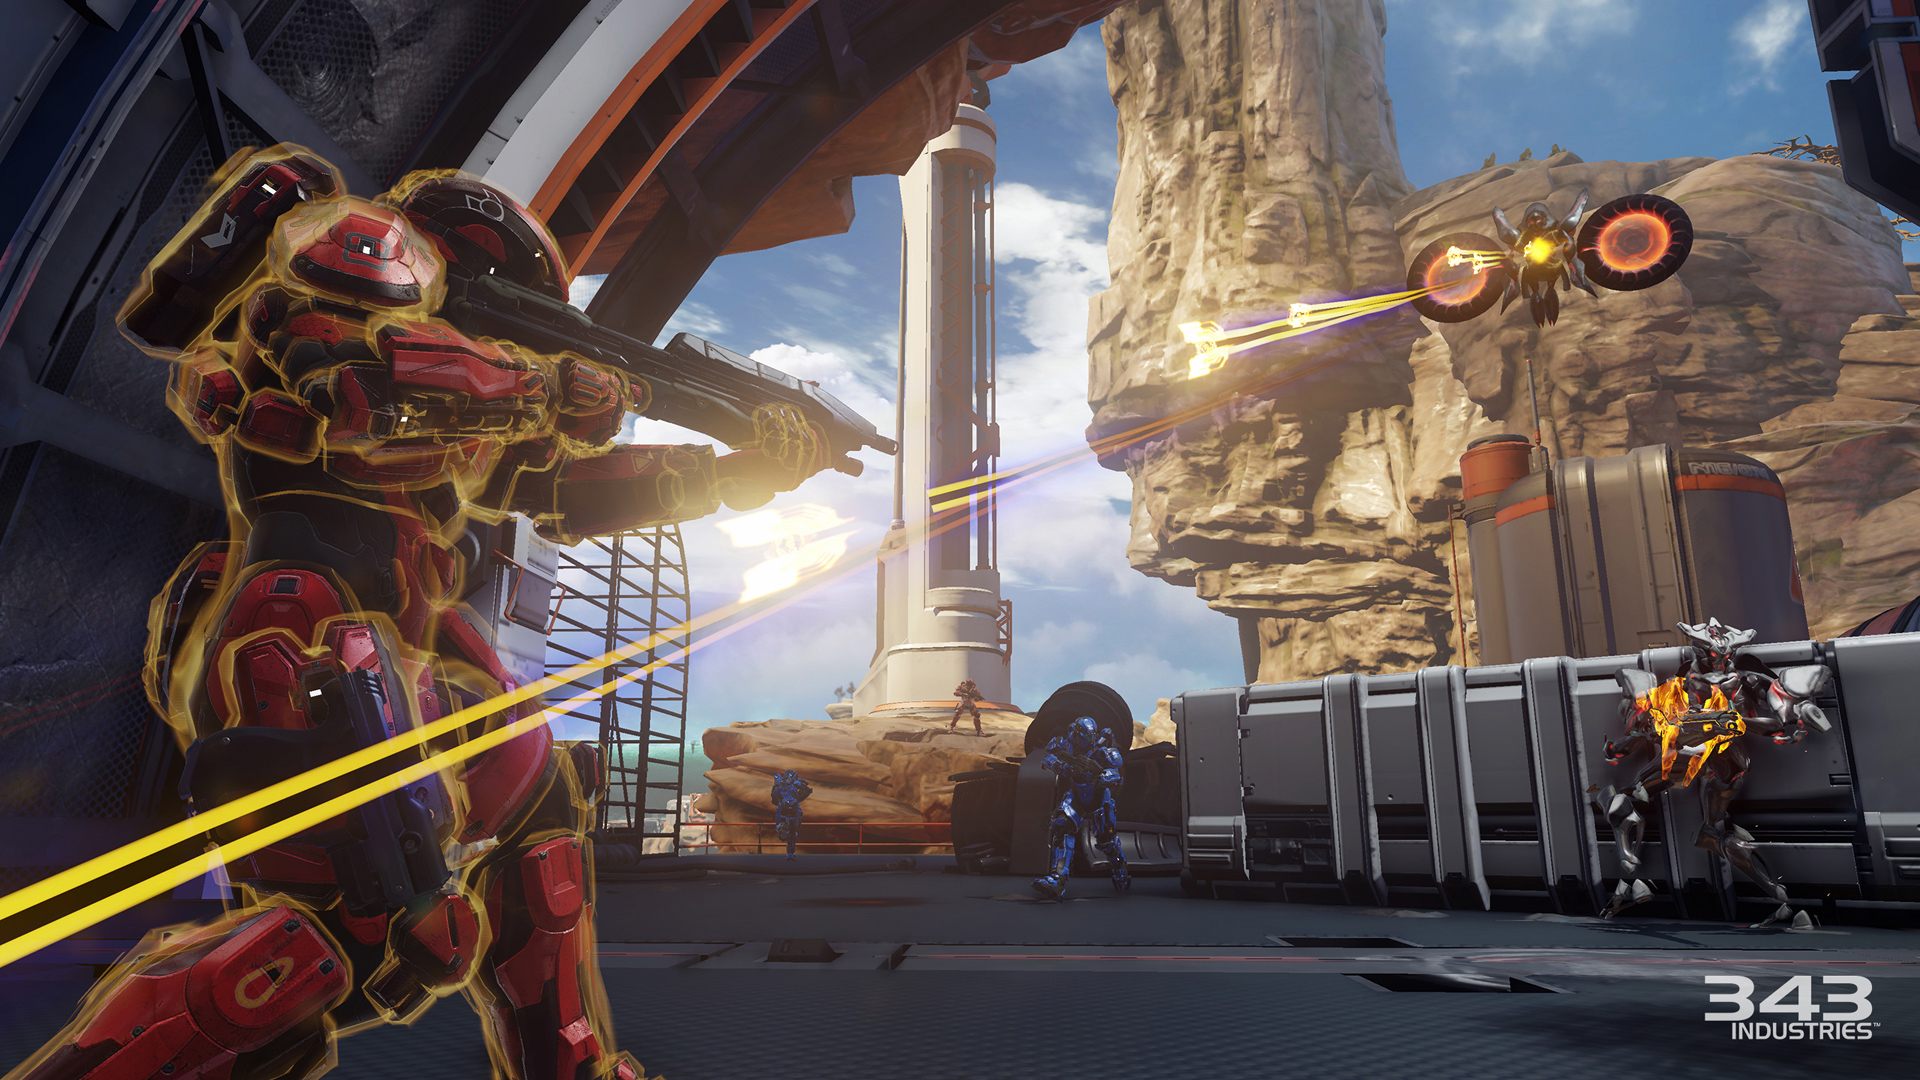 Halo 5 preview photo